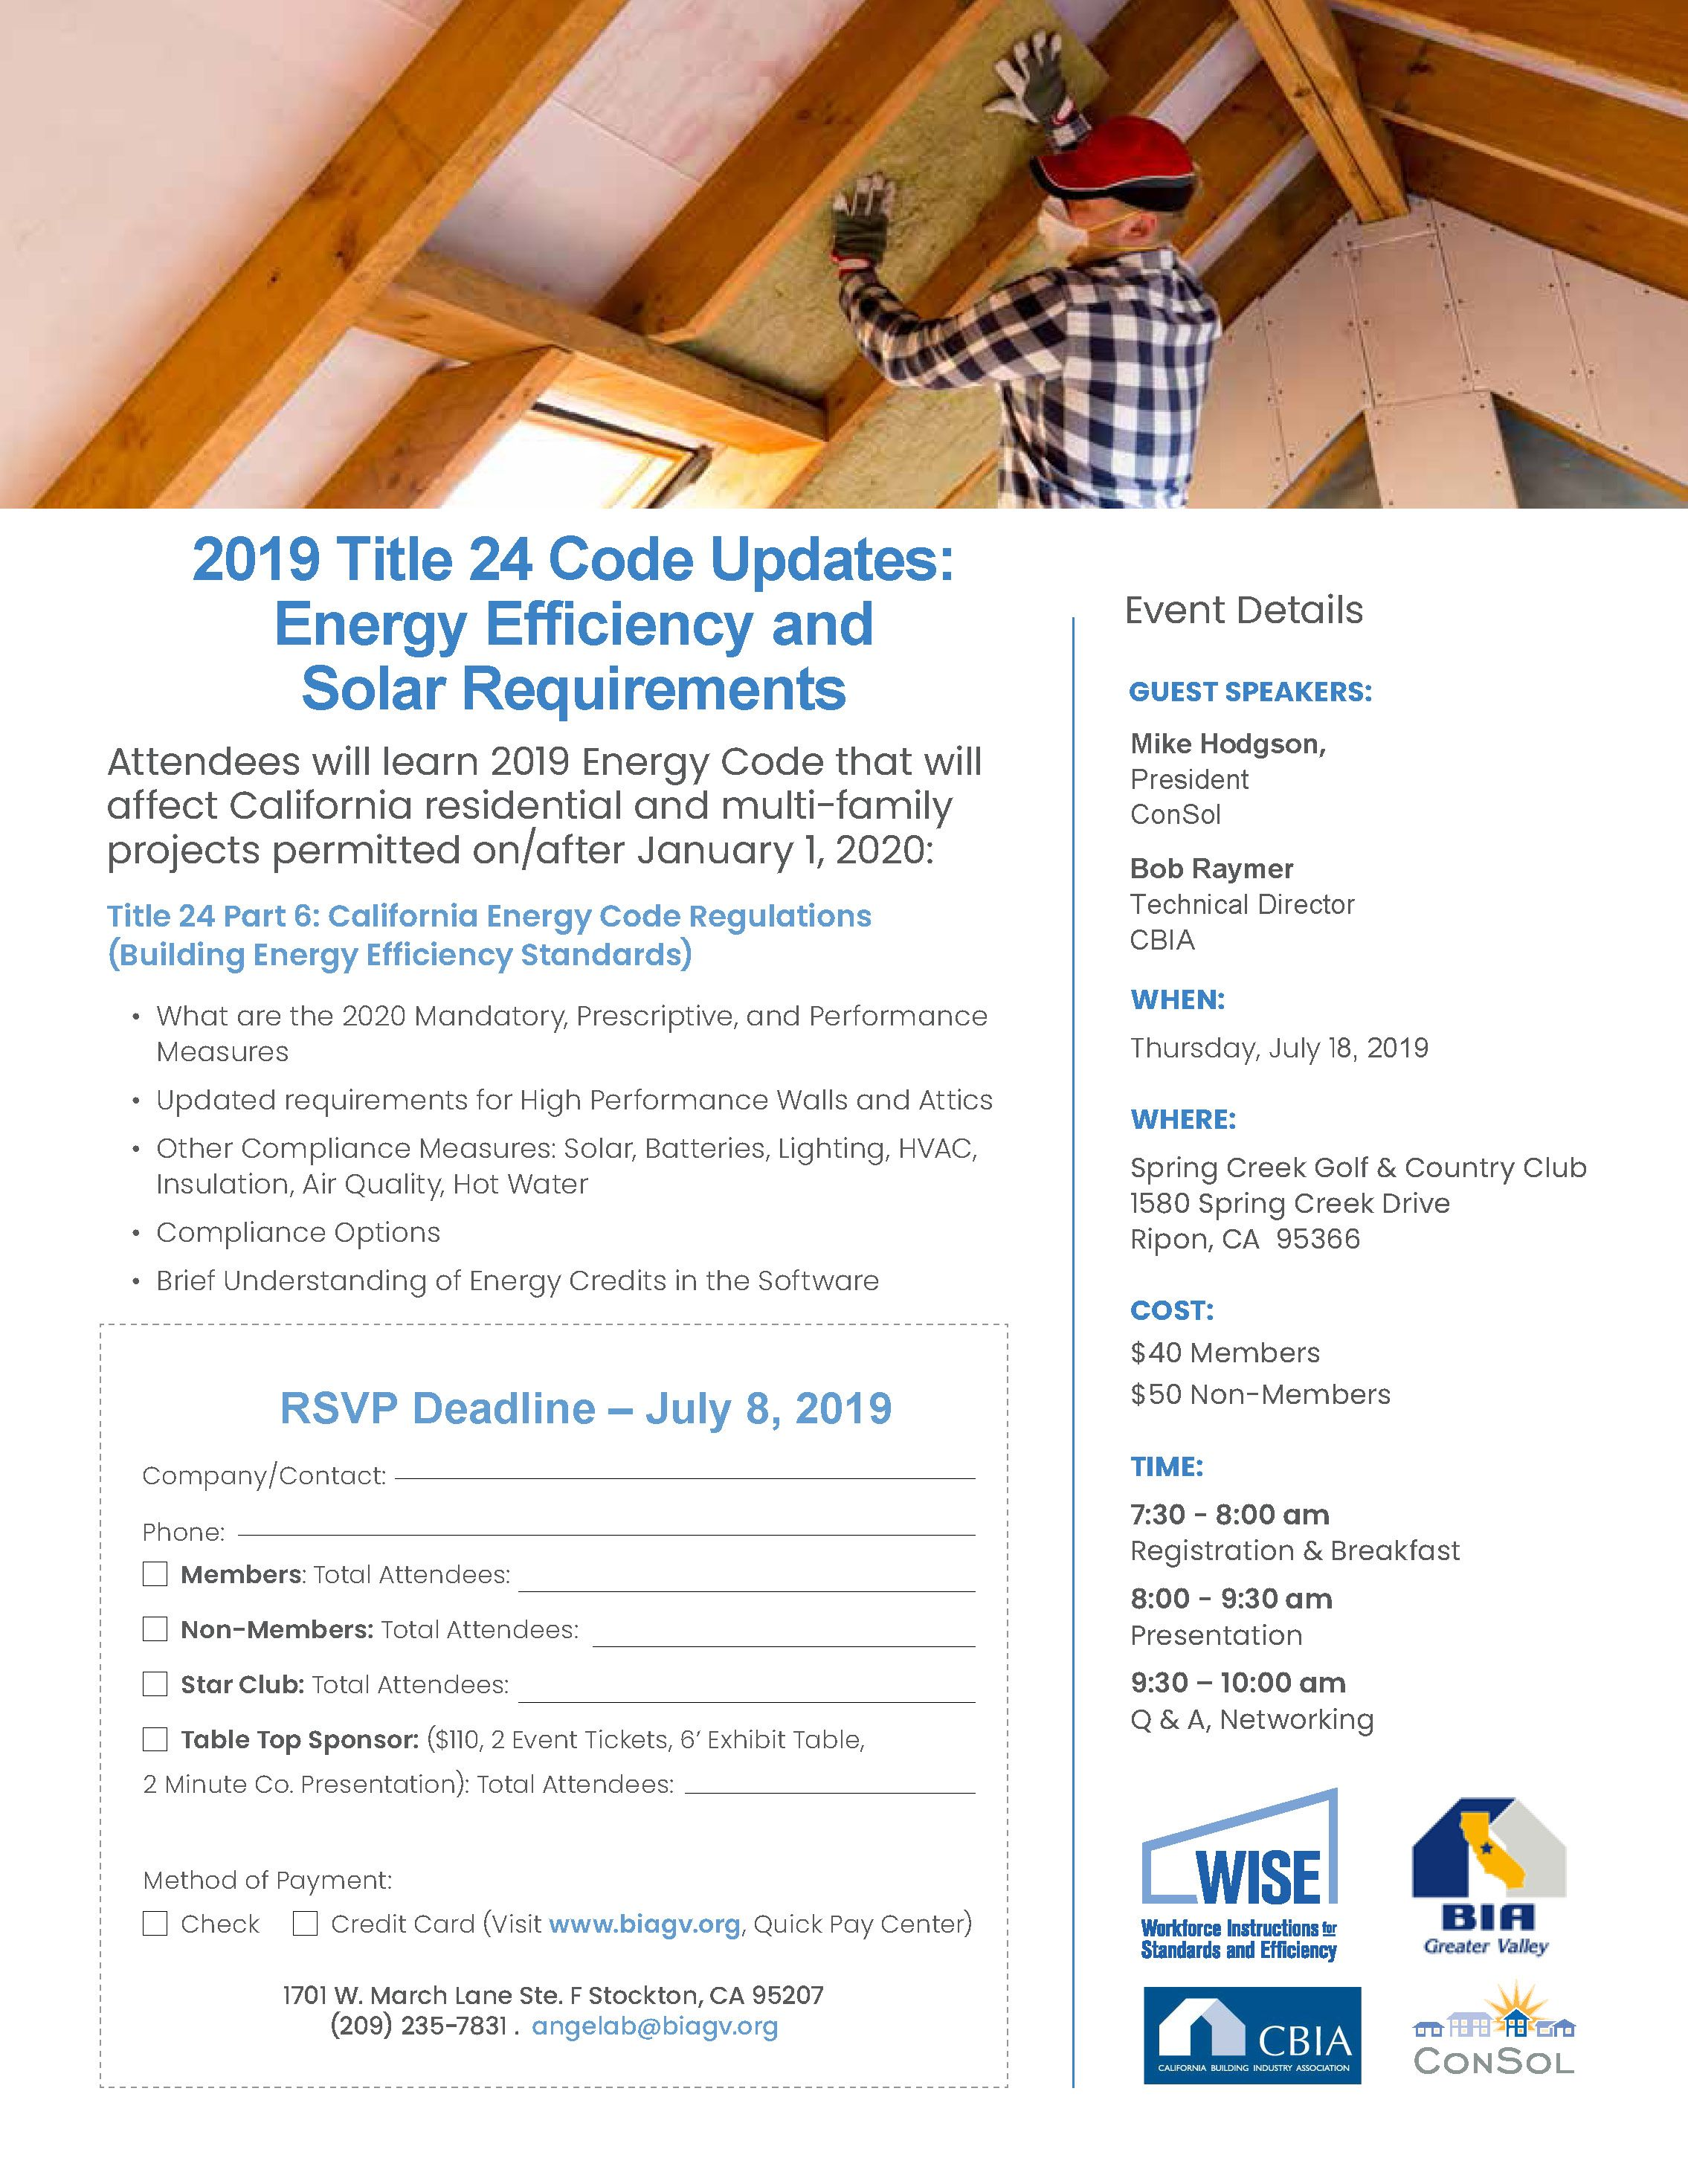 2019 Title 24 Code Update Coding, Title 24, Coding software